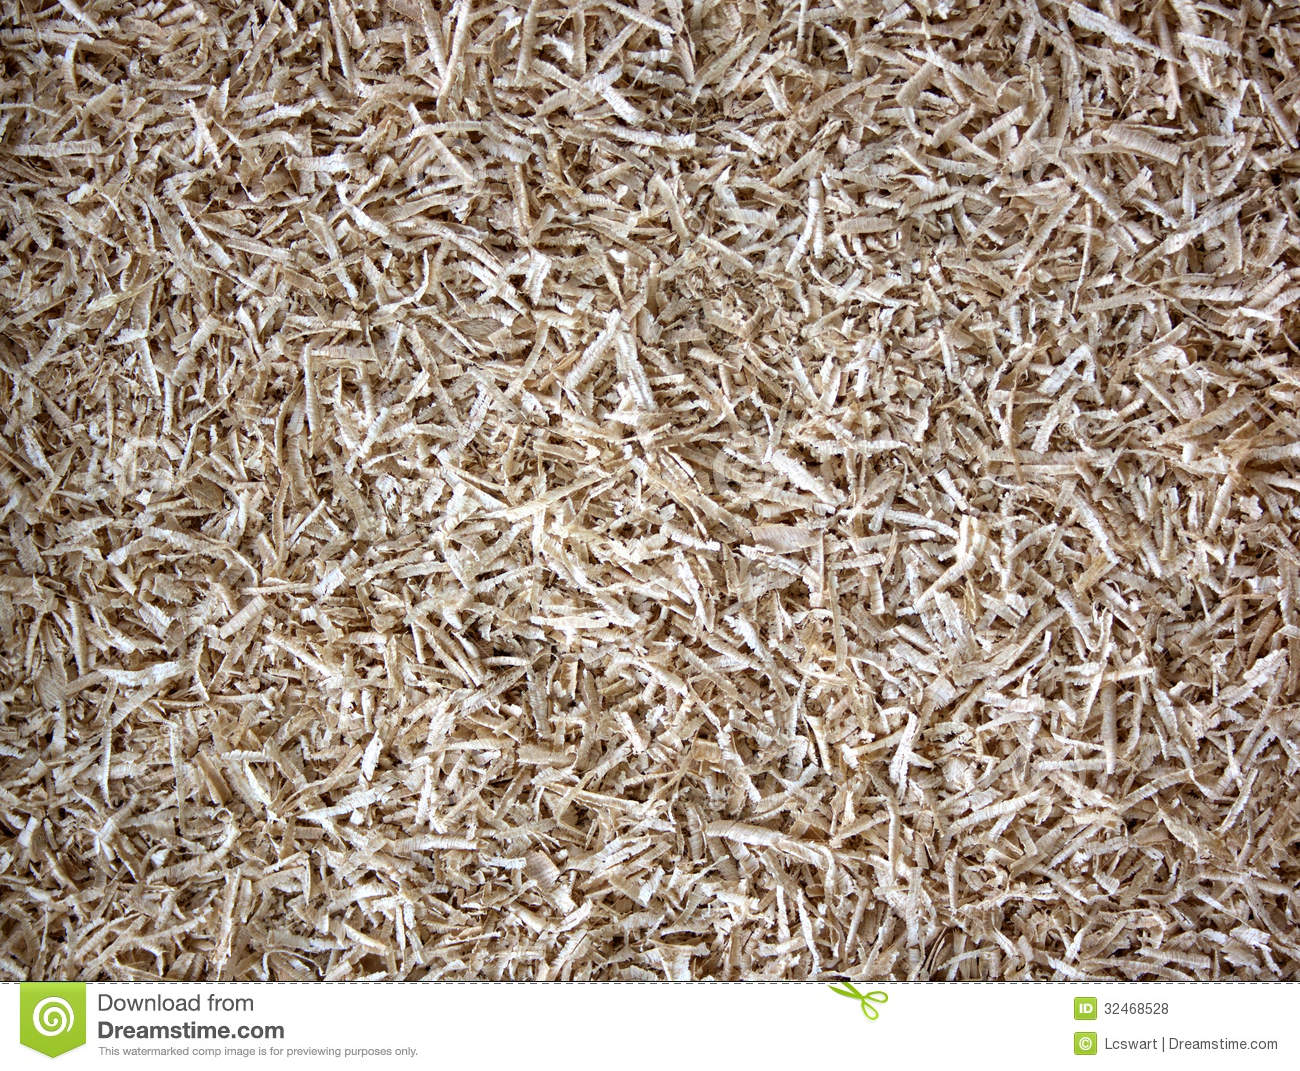 How Different Are Wood Shavings And Sawdust ~ Wood shavings and sawdust texture stock photo image